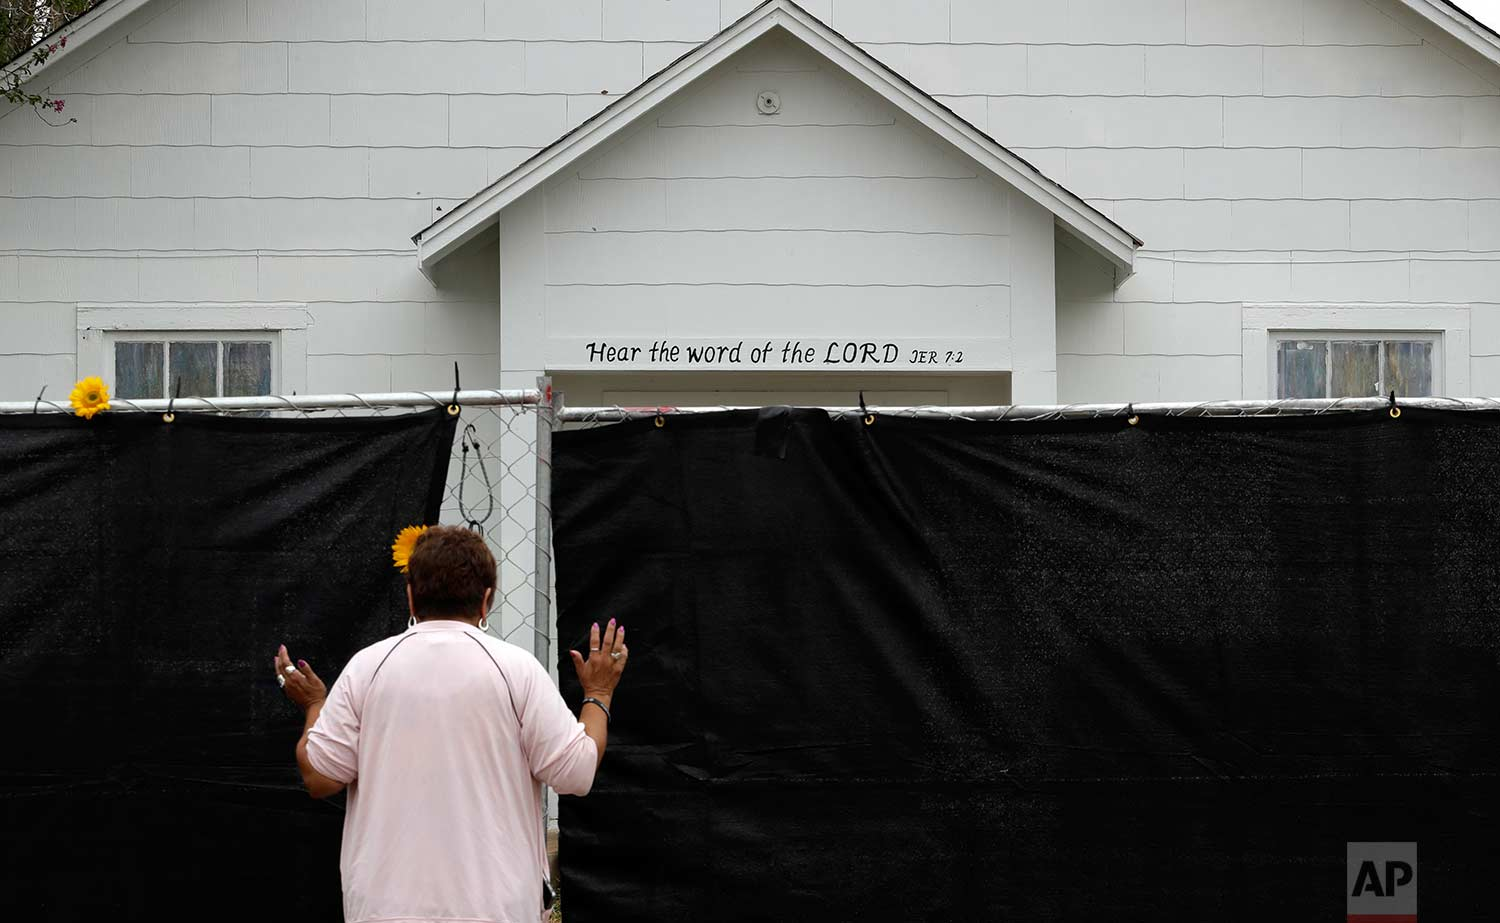 A woman prays next to a fence outside the Sutherland Springs First Baptist Church, Sunday, Nov. 12, 2017, in Sutherland Springs, Texas, a week after a man opened fire inside the church. (AP Photo/Eric Gay)